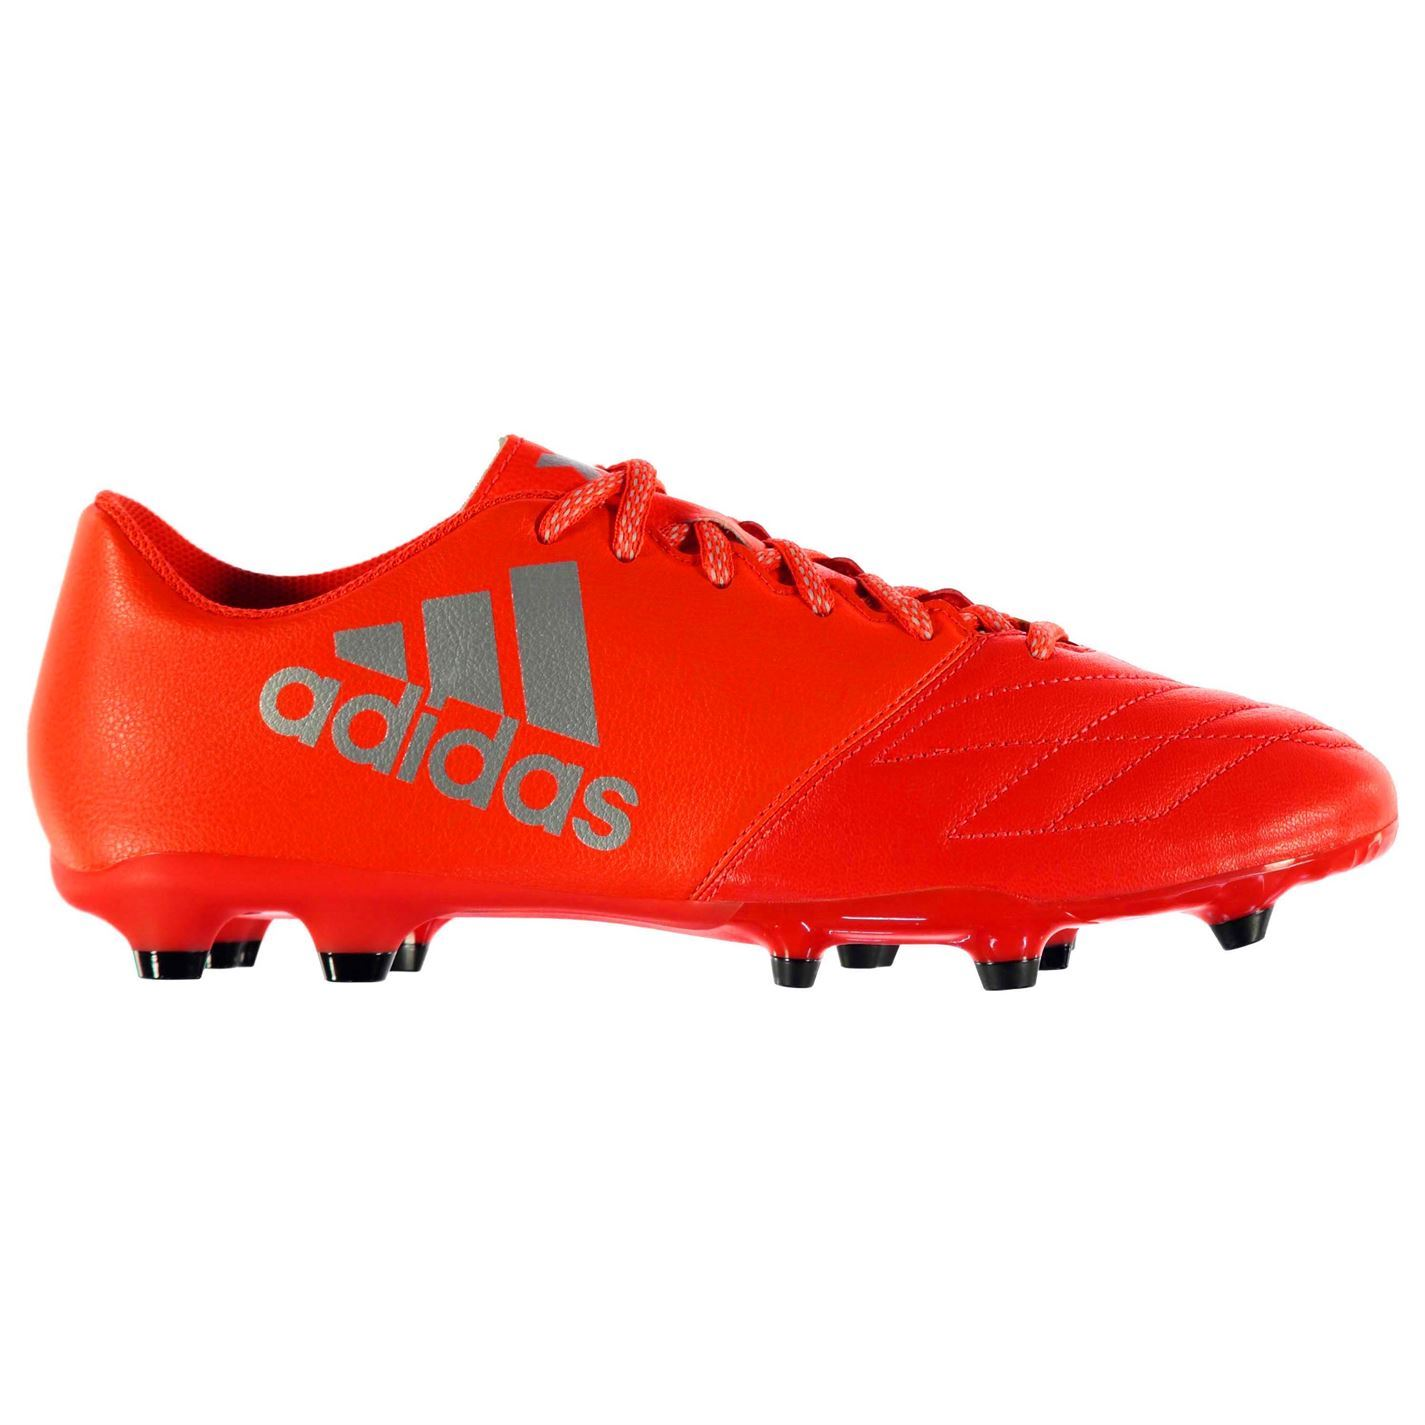 ... adidas X 16.3 Leather FG Firm Ground Football Boots Mens Red Soccer Cleats  Shoes ...